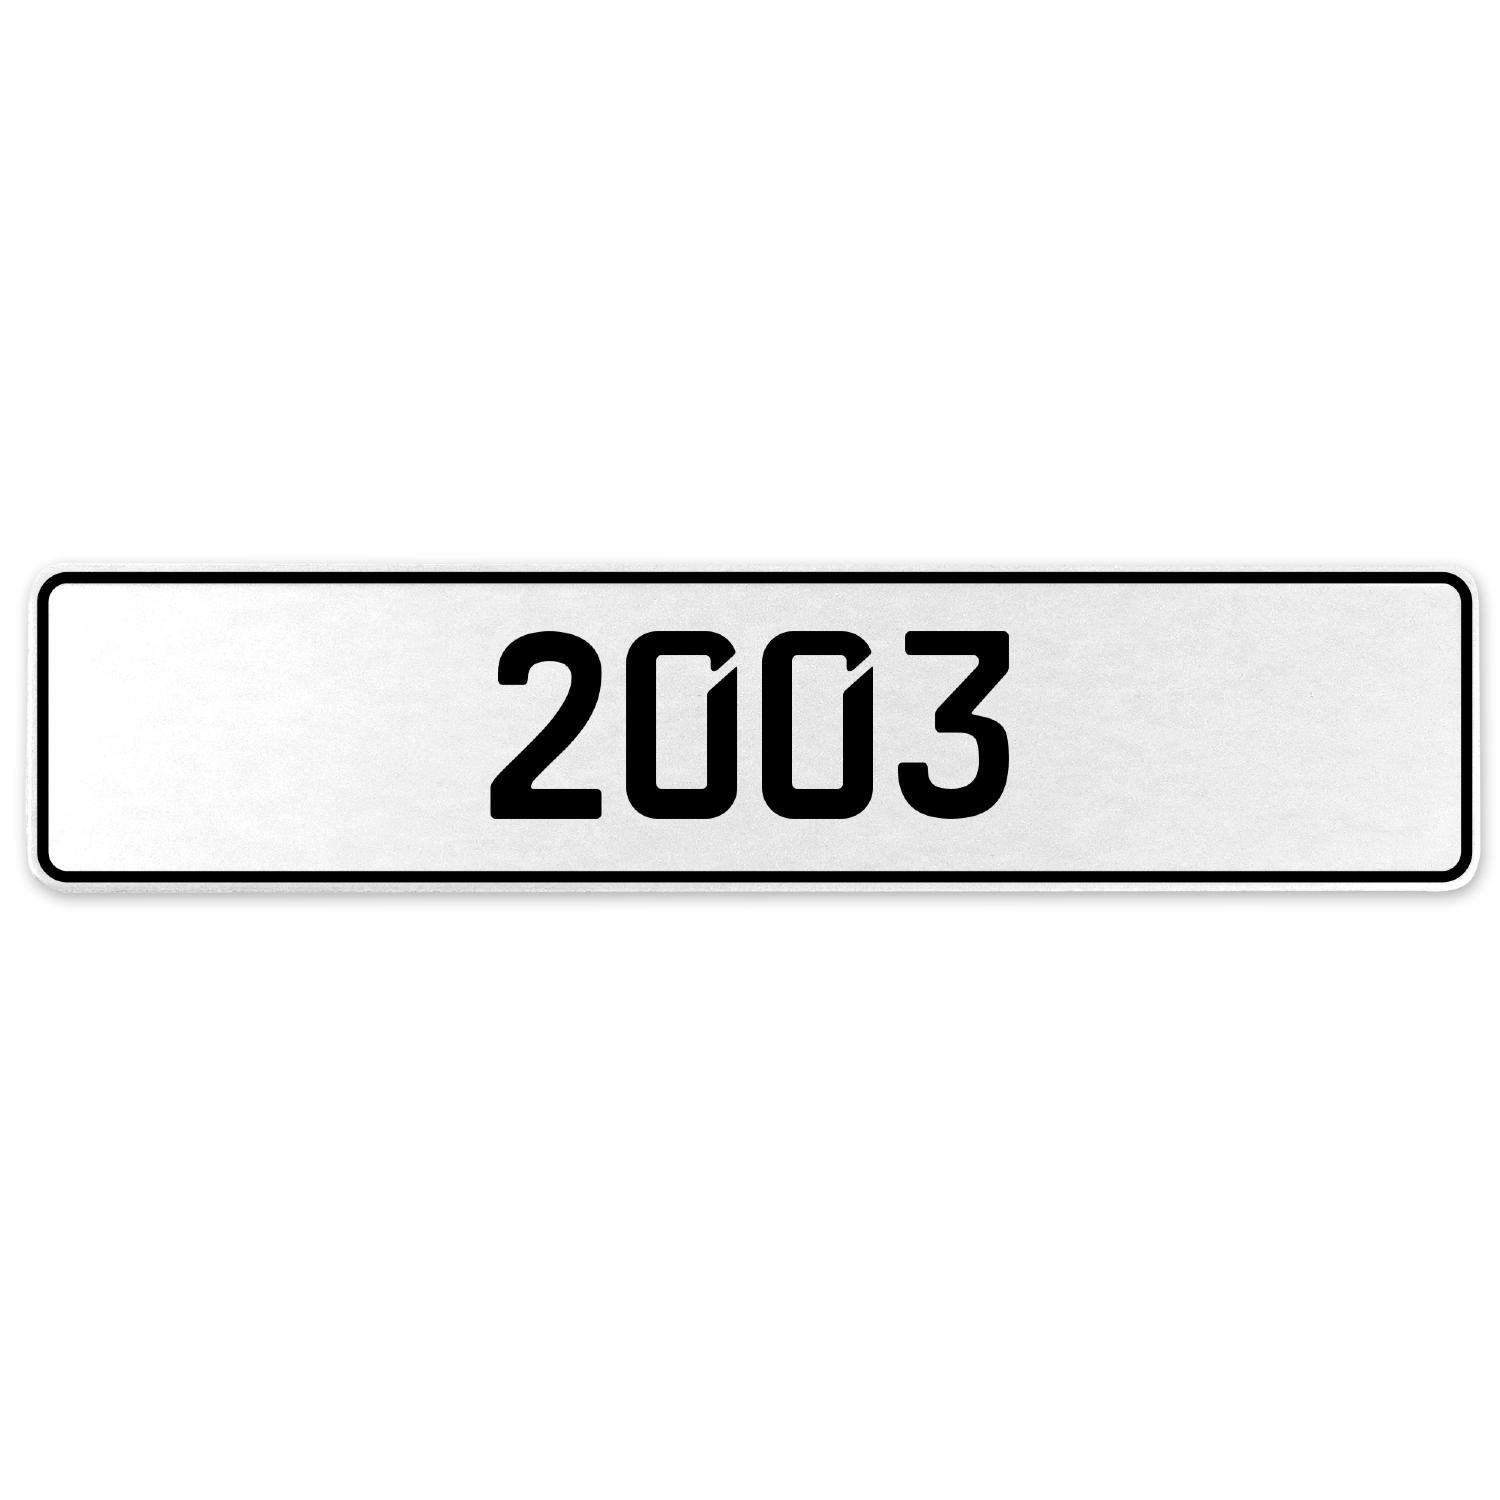 Vintage Parts 553246 2003 Year White Stamped Aluminum European License Plate